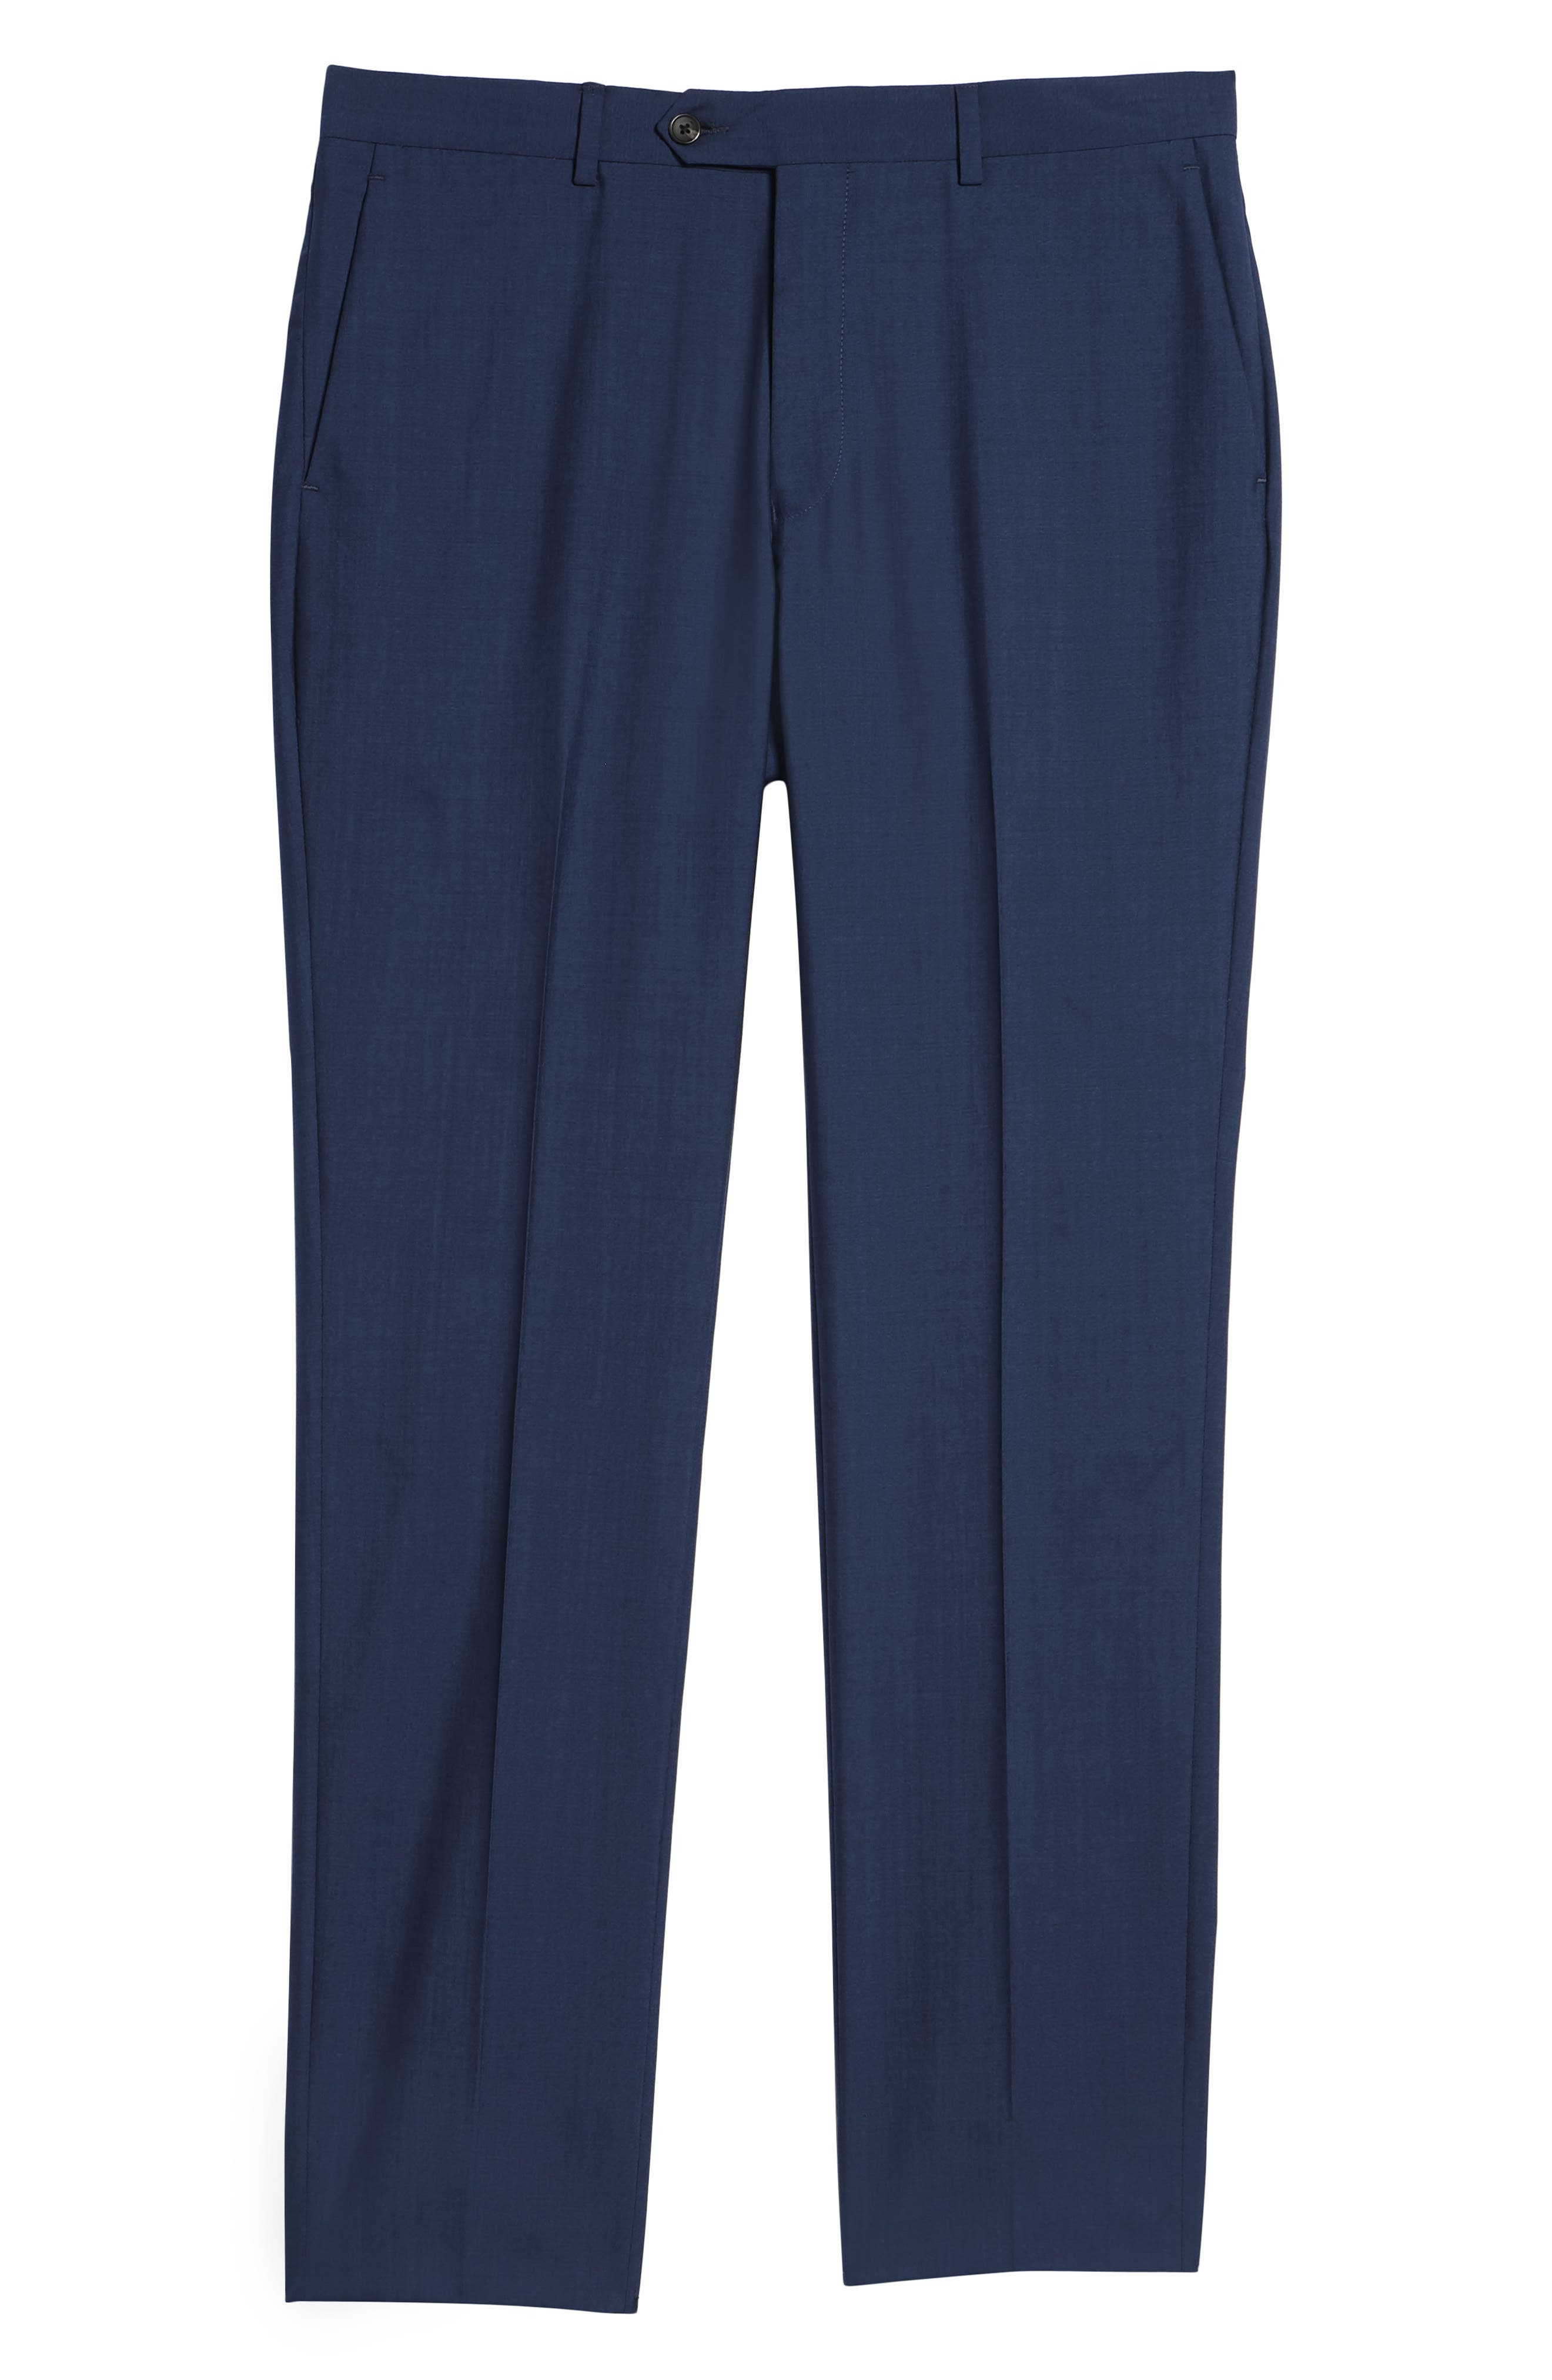 Dagger Flat Front Solid Wool Trousers,                             Alternate thumbnail 6, color,